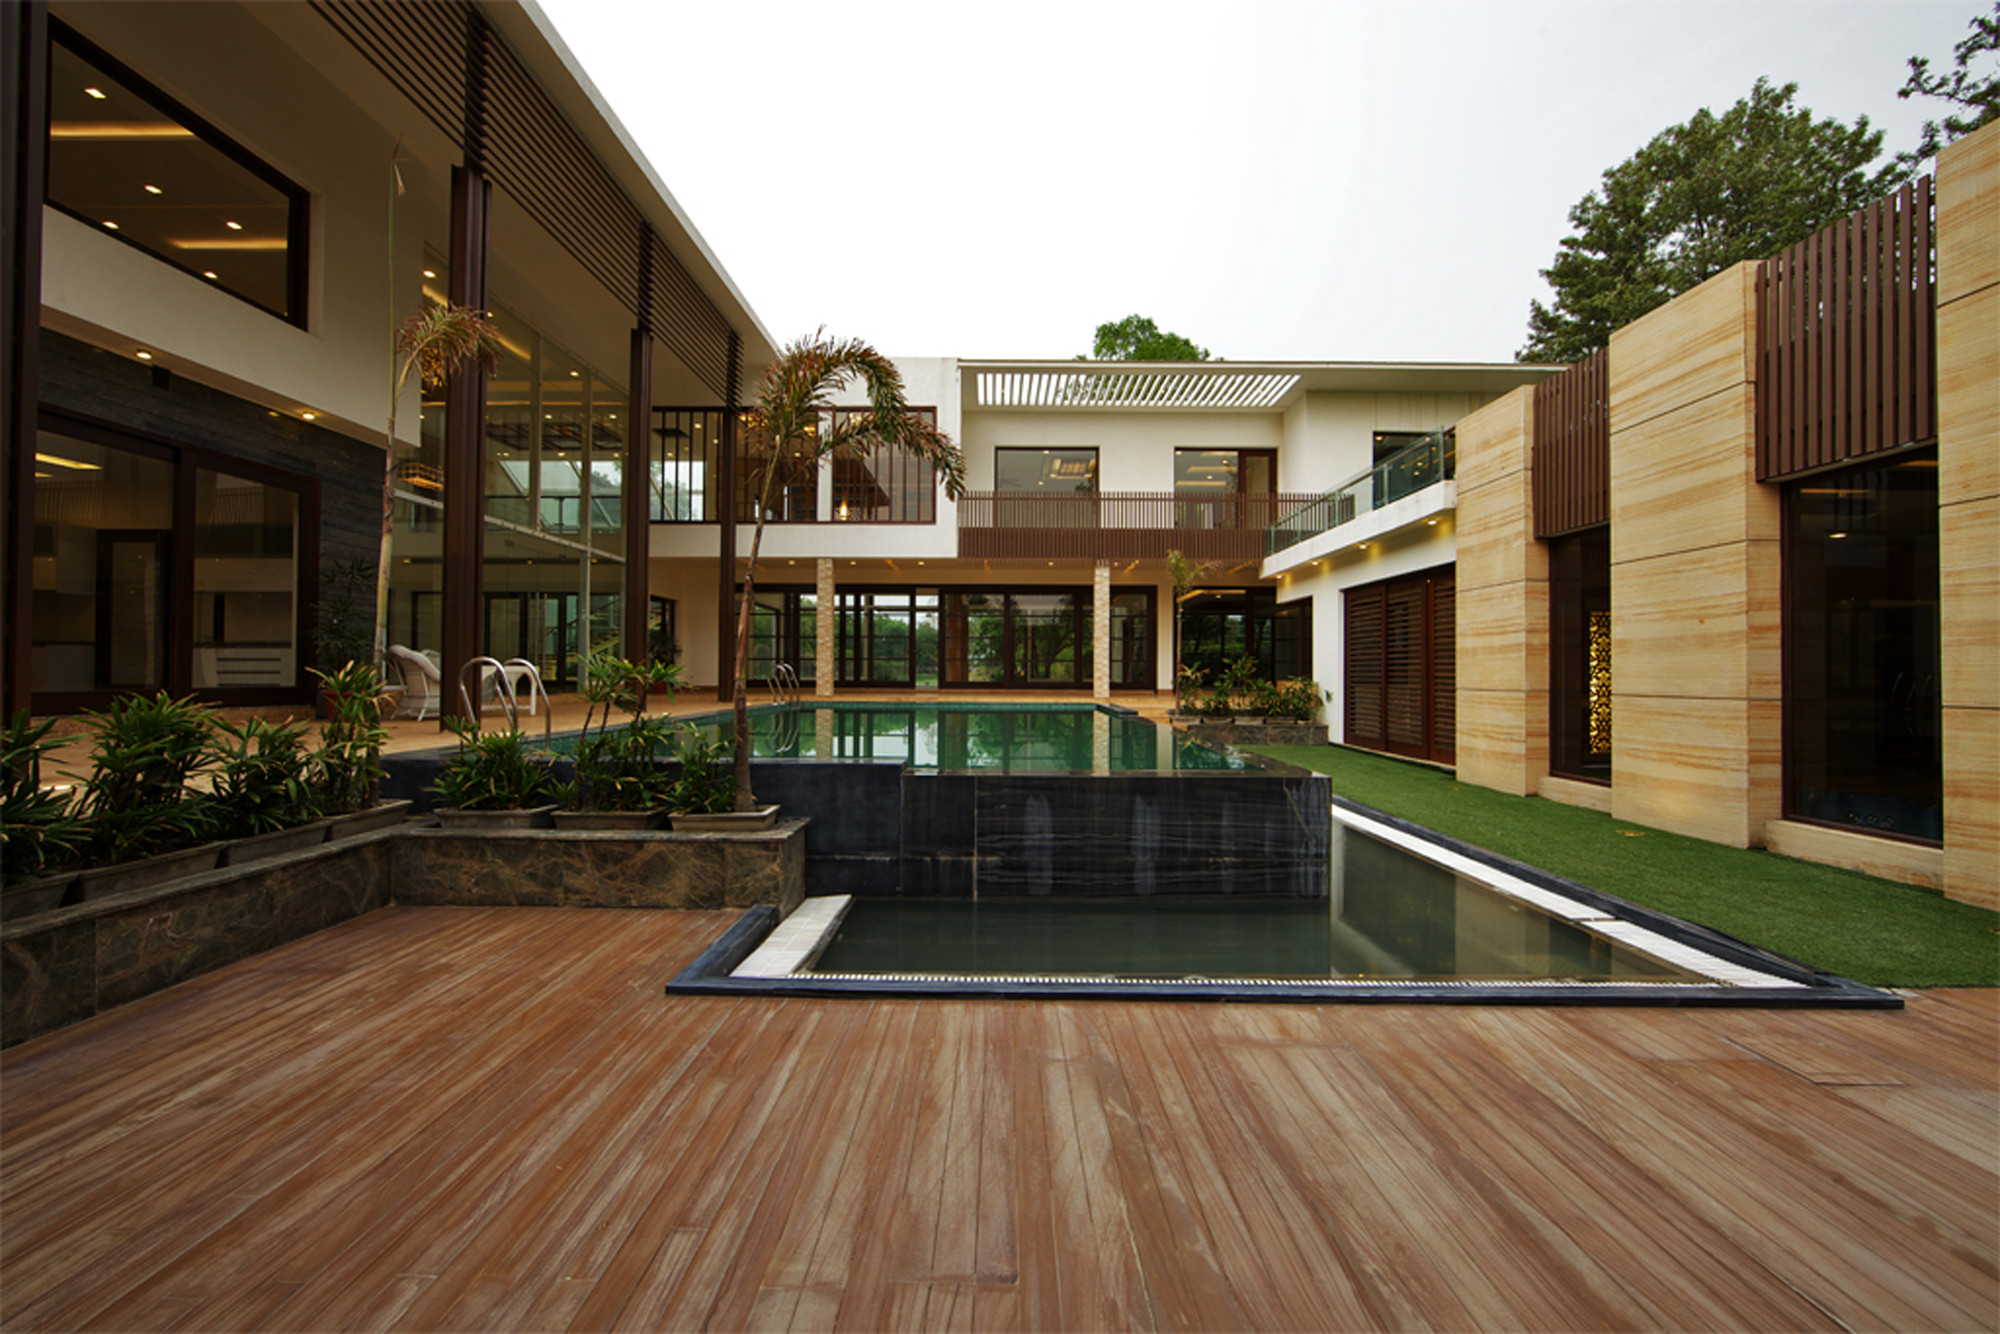 Sachdeva farmhouse spaces architects ka archdaily for Architecture design for home in delhi